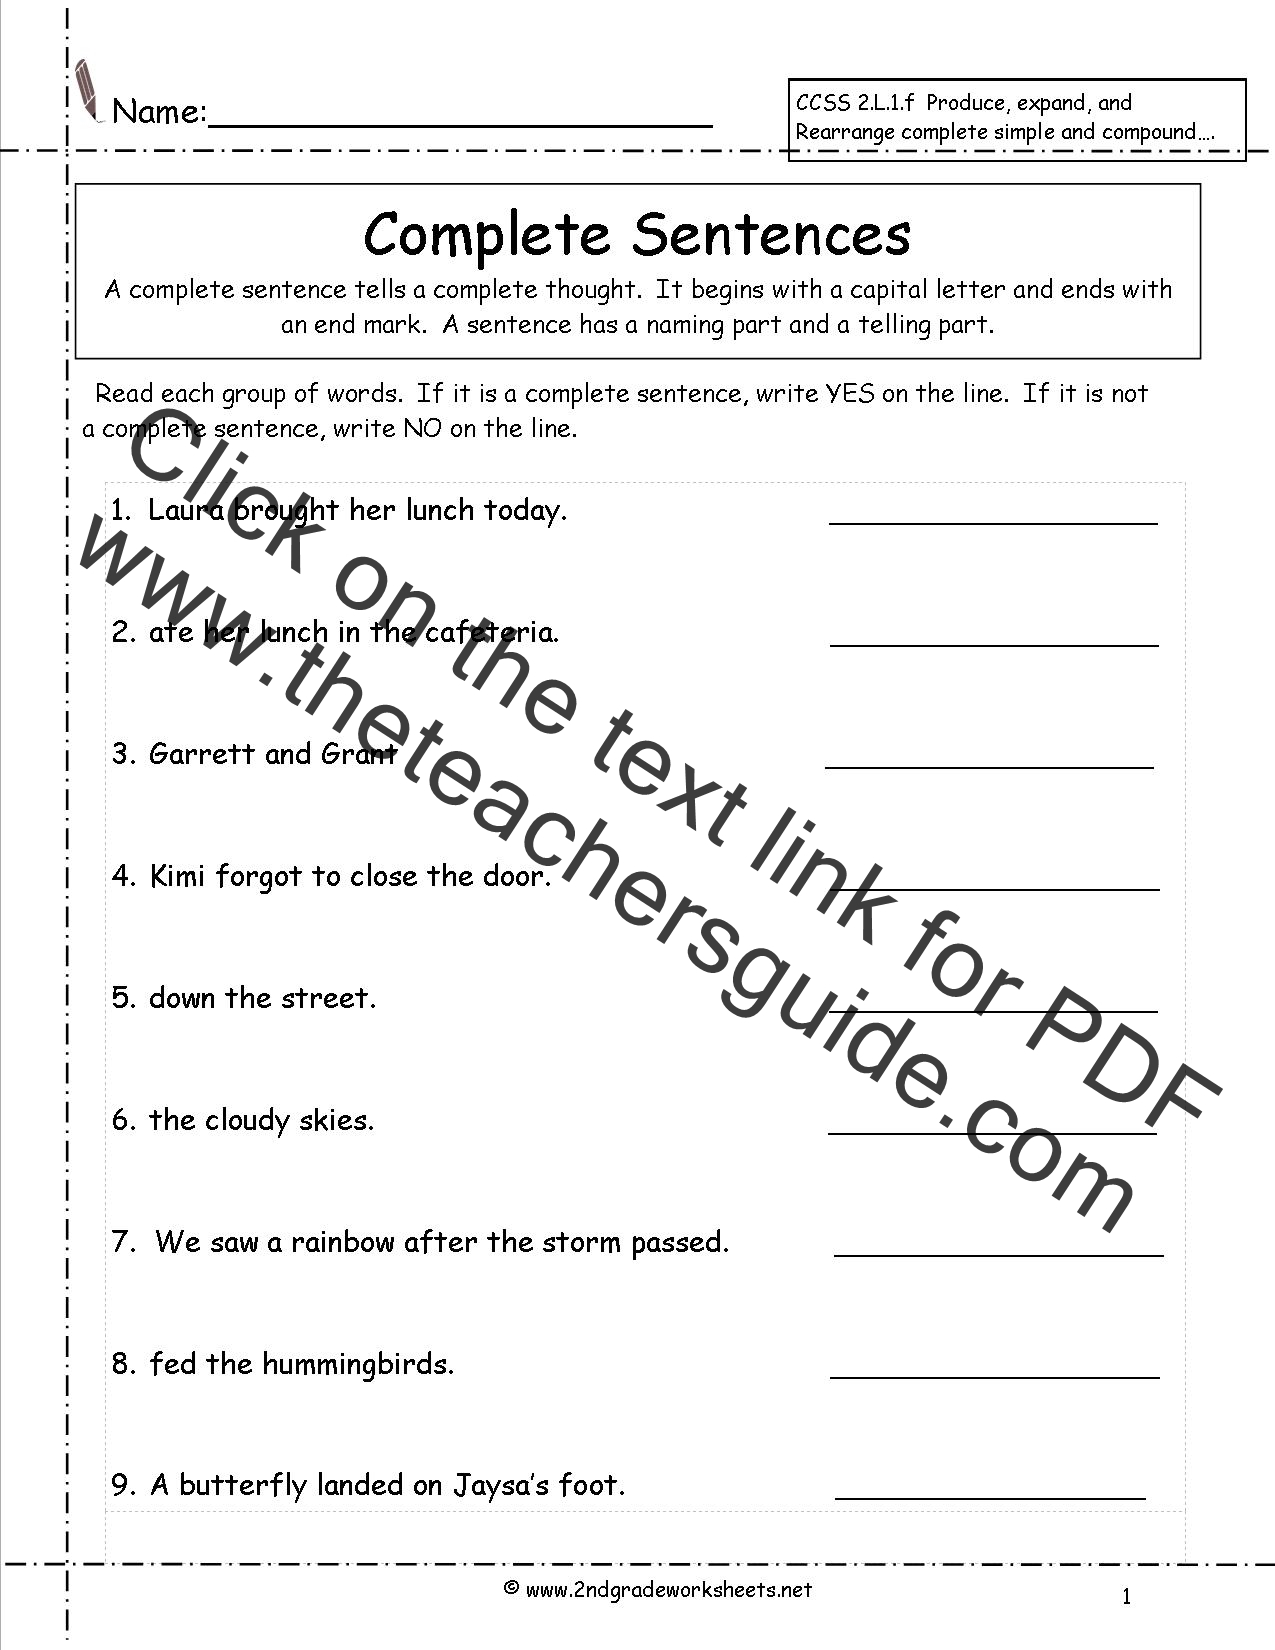 Worksheets Number Sentence Worksheets 2nd Grade second grade sentences worksheets ccss 2 l 1 f worksheets